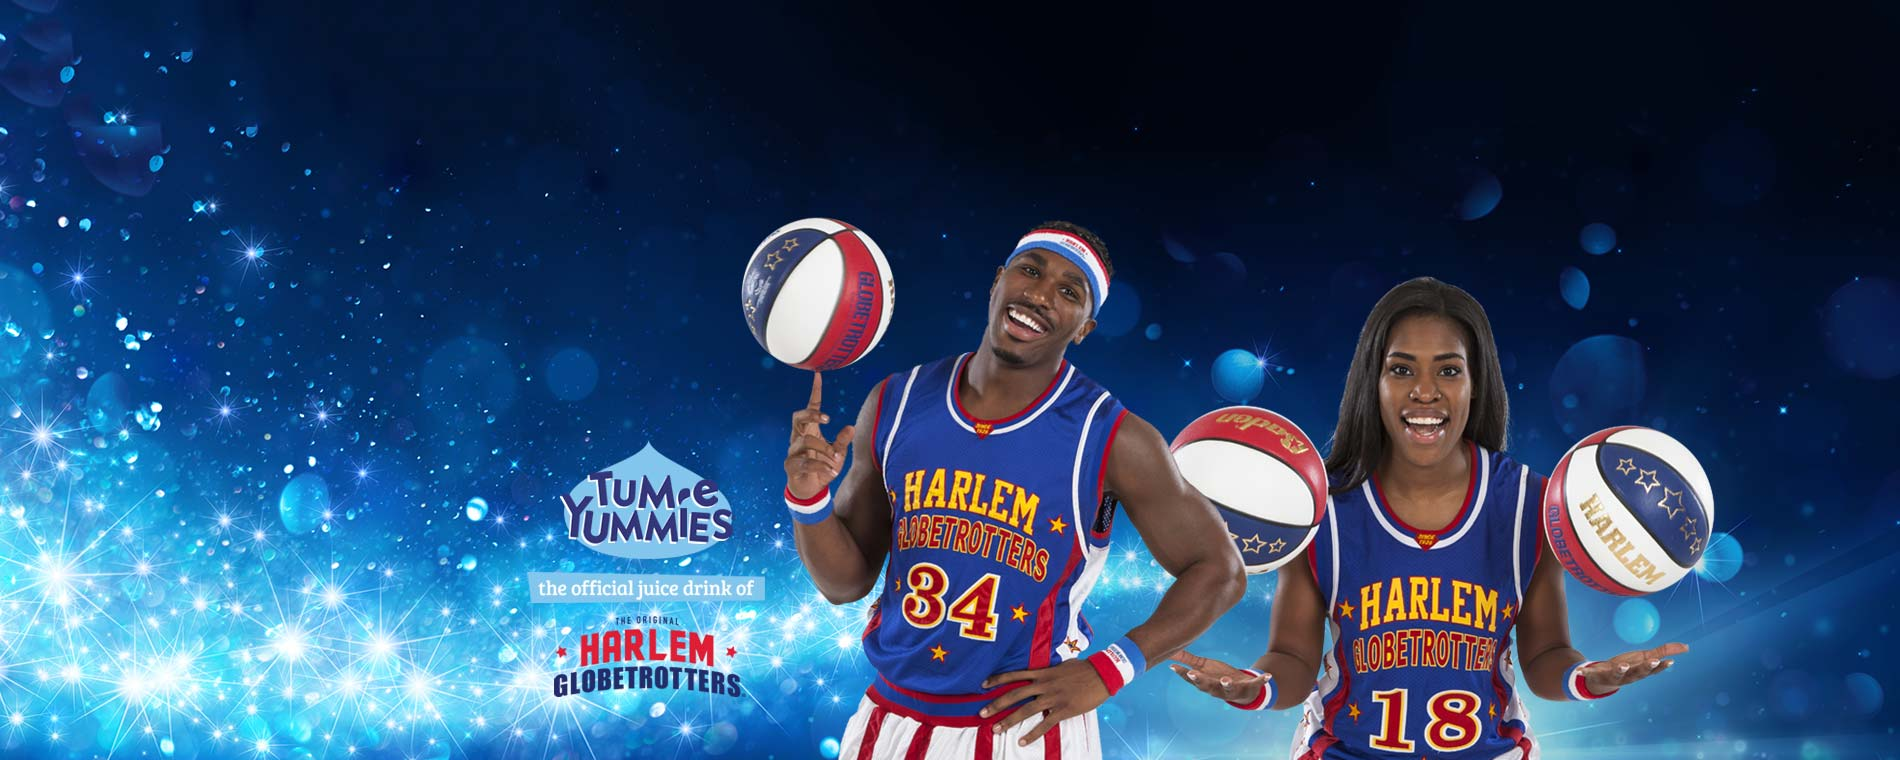 Harlem Globetrotters presented by Tum-E Yummies®